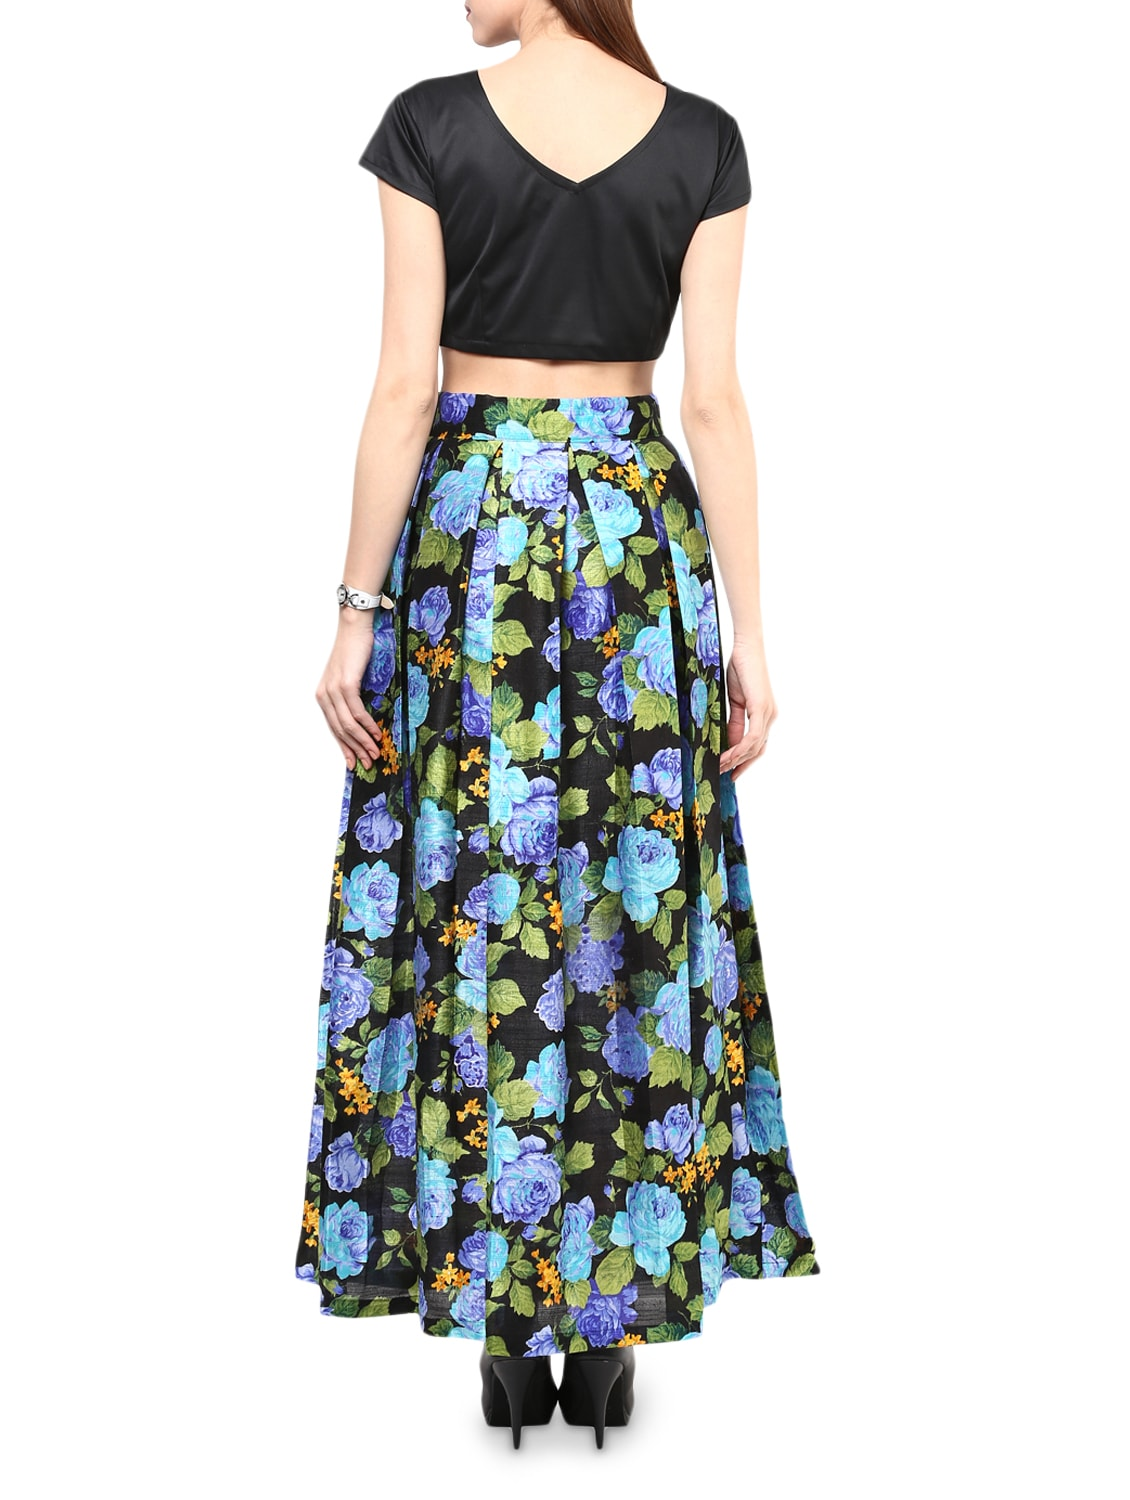 0ede4f4c84e324 Buy Black Crop Top And Skirt Set for Women from Chitwan Mohan for ₹1665 at  26% off